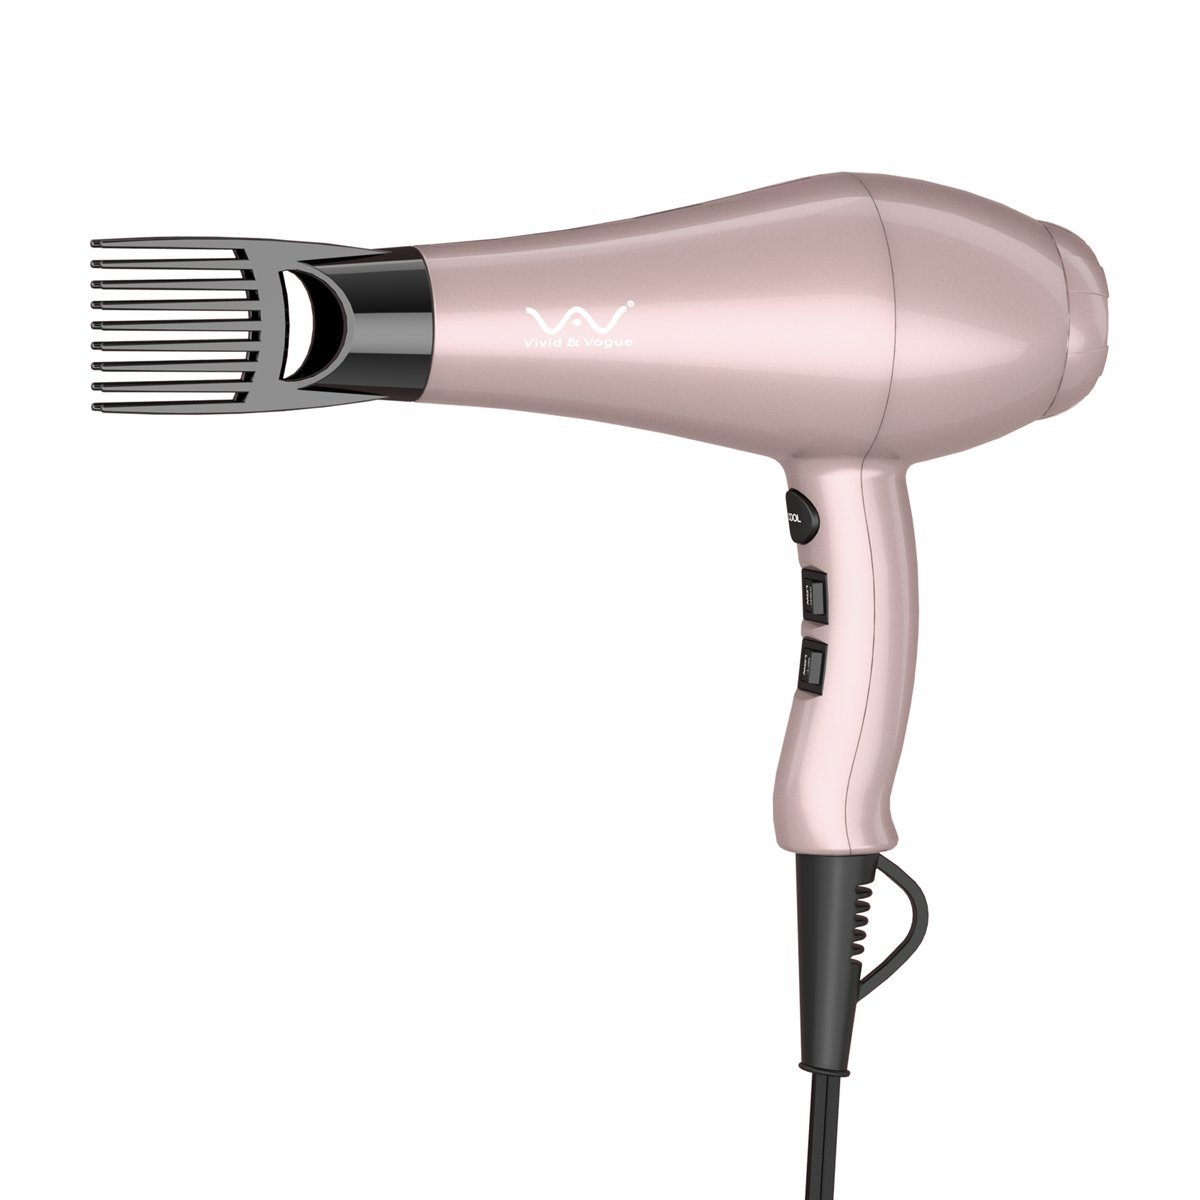 VAV Professional Hair Dryer Negative Ion Blow Dryer 1875W Salon Powerful Dryer Far Infrared With 3